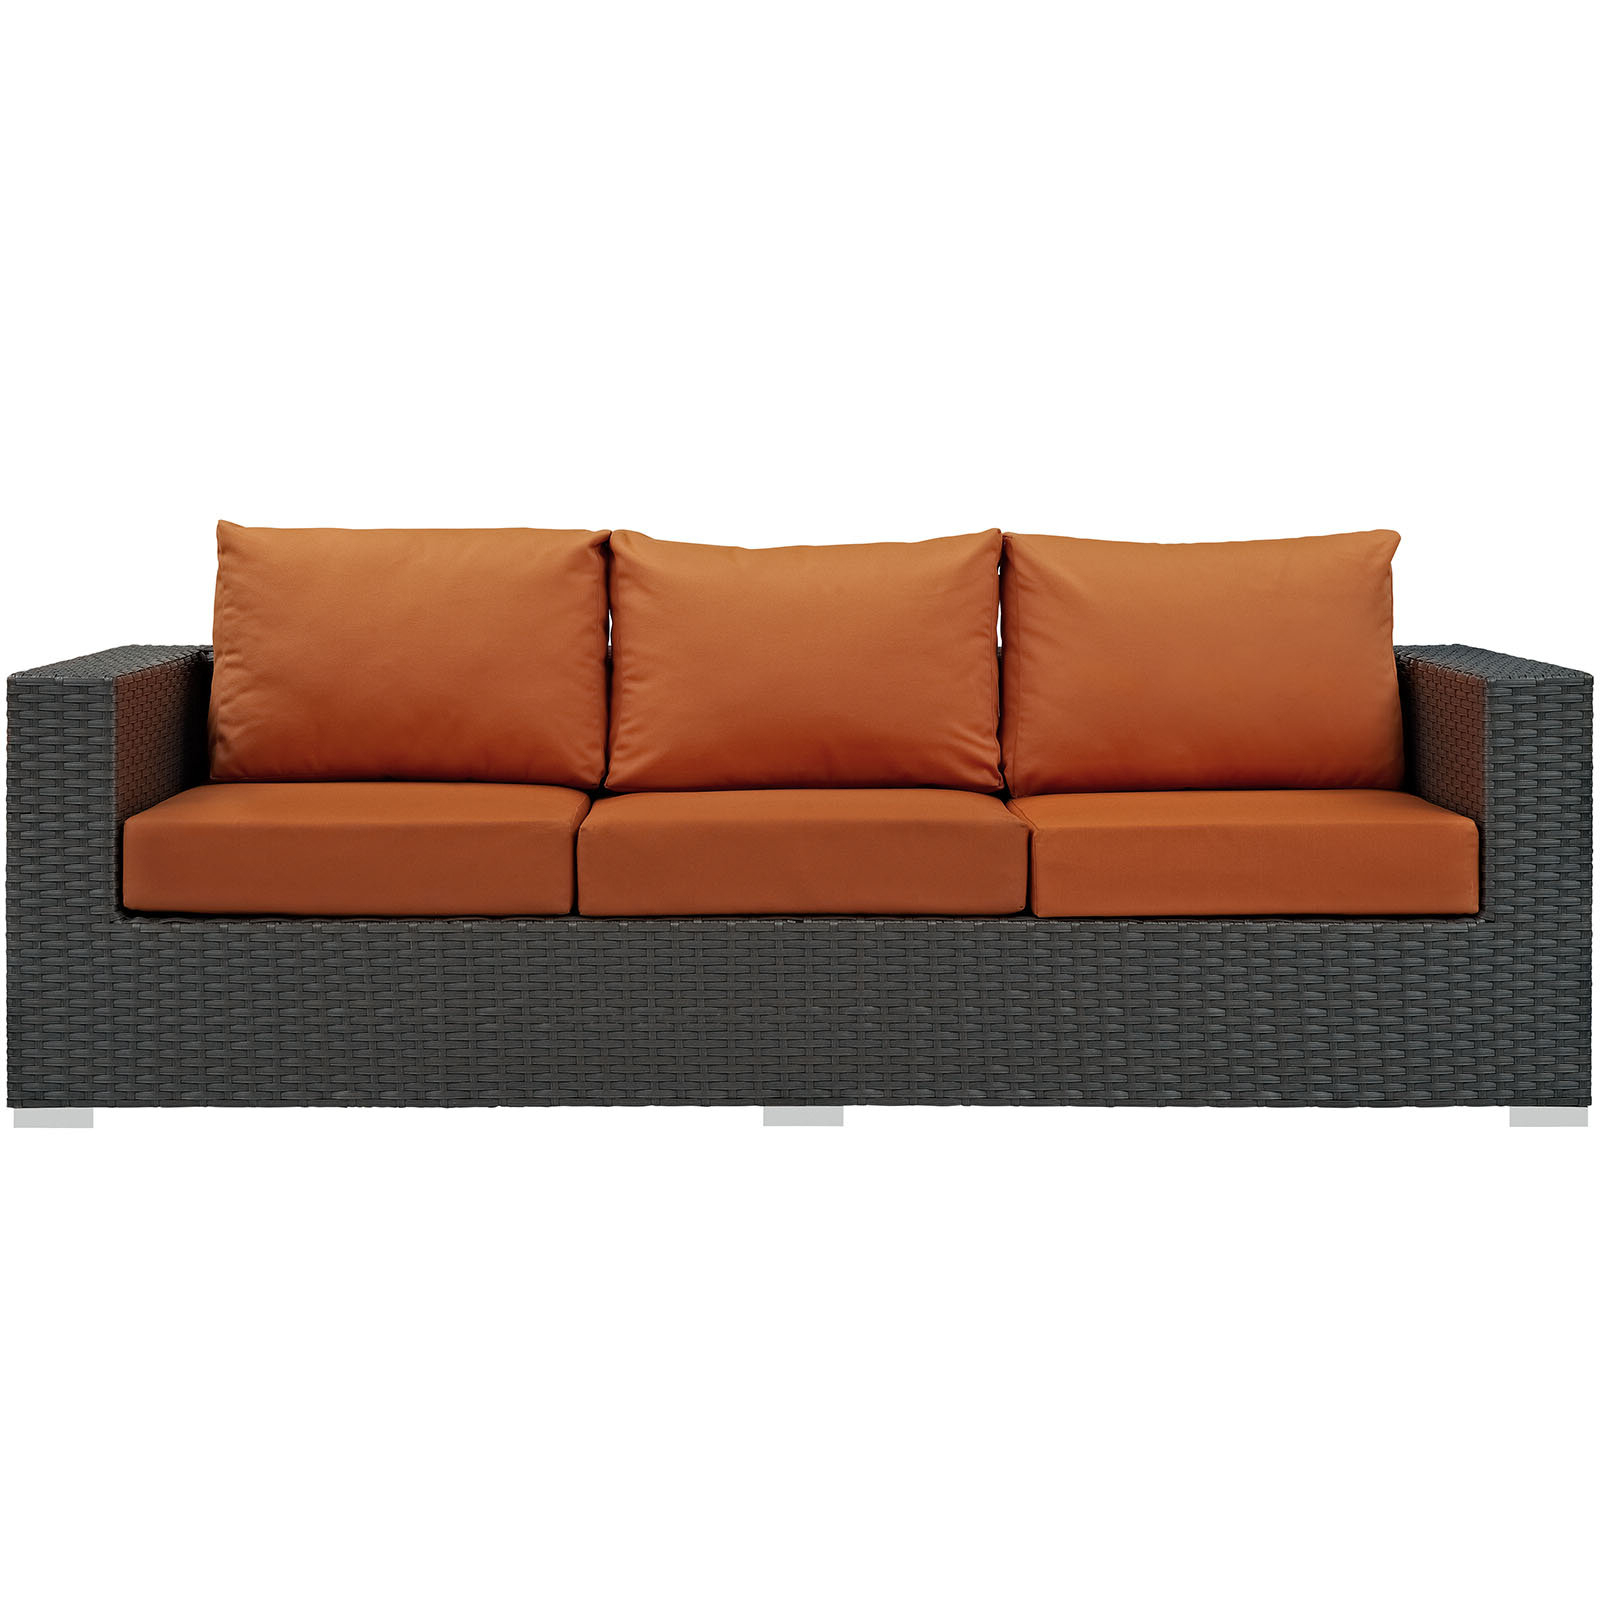 Most Recent Tripp Sofa With Cushions With Regard To Tripp Sofa With Cushions (View 5 of 20)